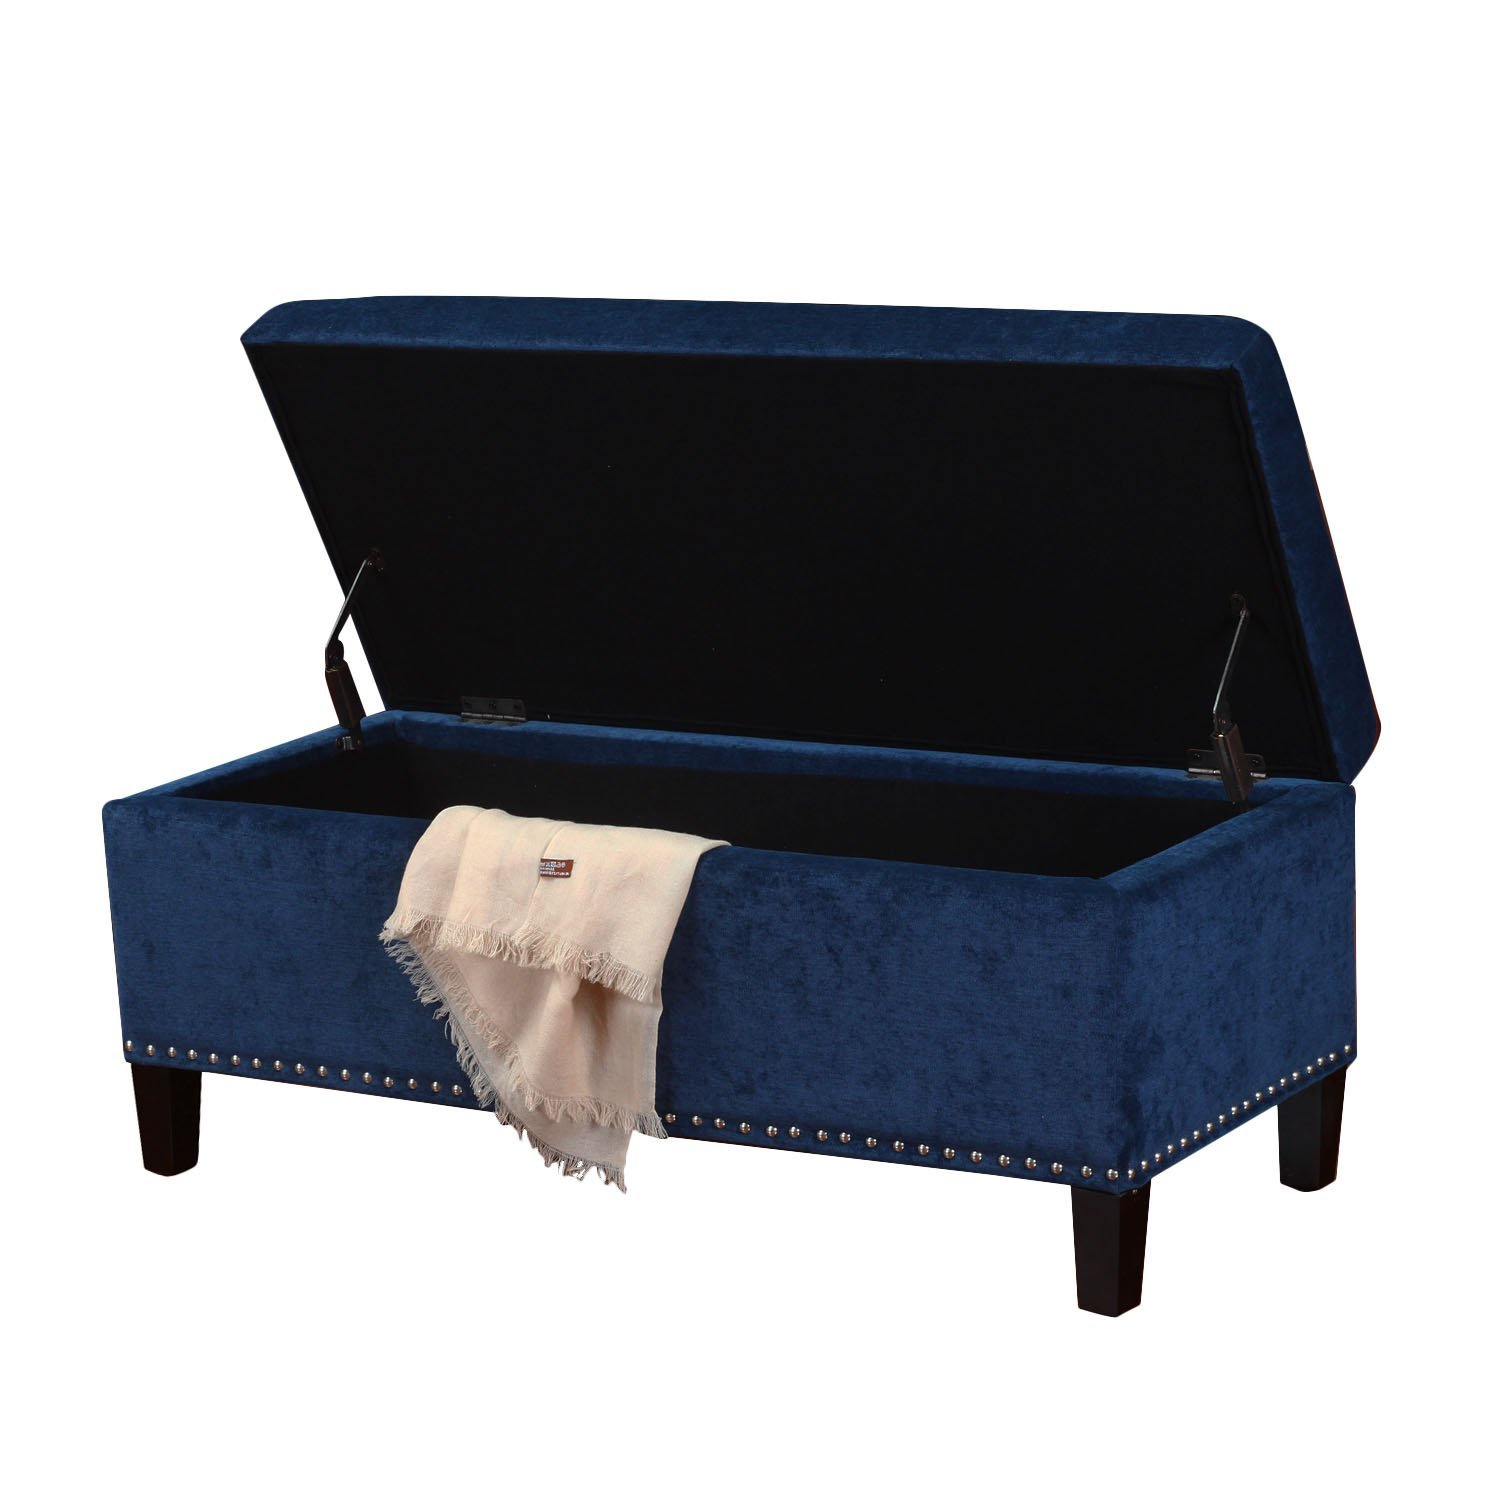 ... Adeco Royal Blue Microfiber Rectangular Tufted Storage Bench Ottoman  Footstool 42x18 ...